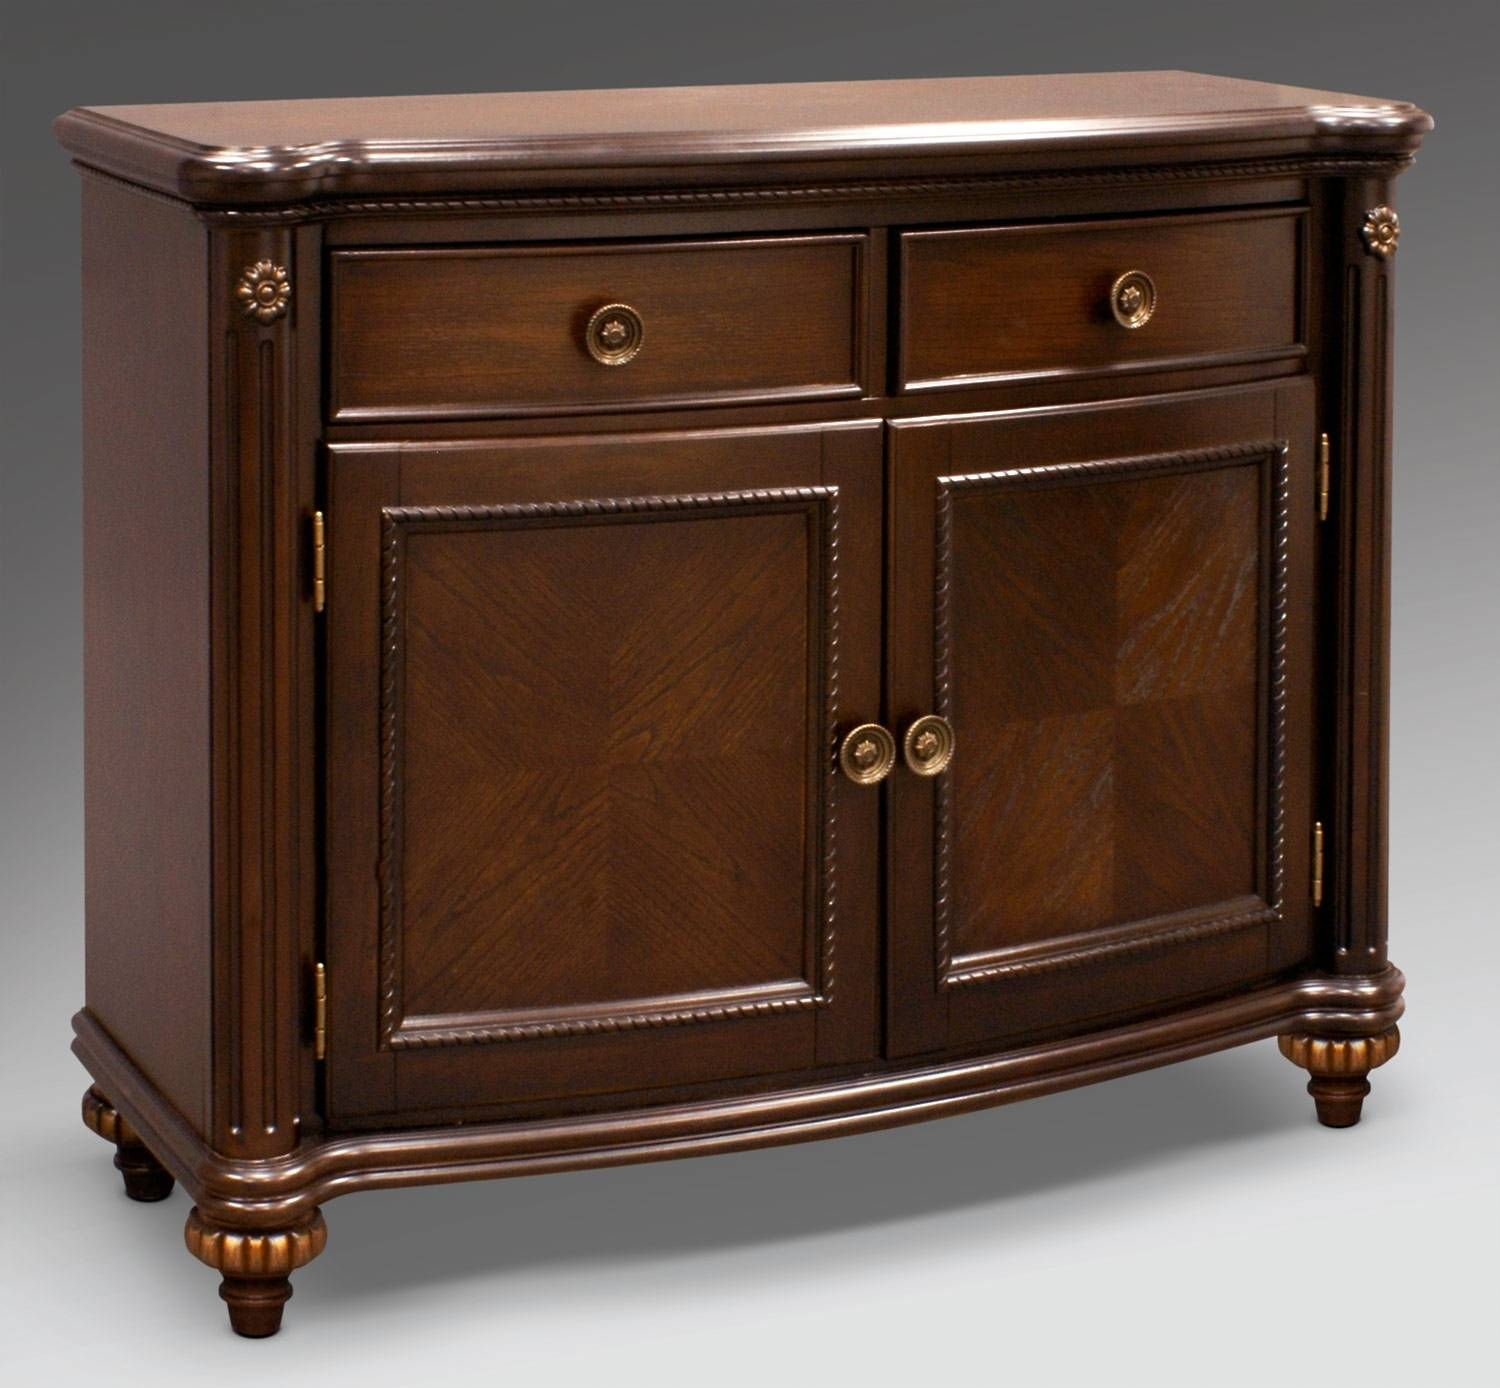 Dining Room Servers Buffet Furniture Pictures Cabinet Trends And In Most Popular Dining Room With Sideboards (#7 of 15)